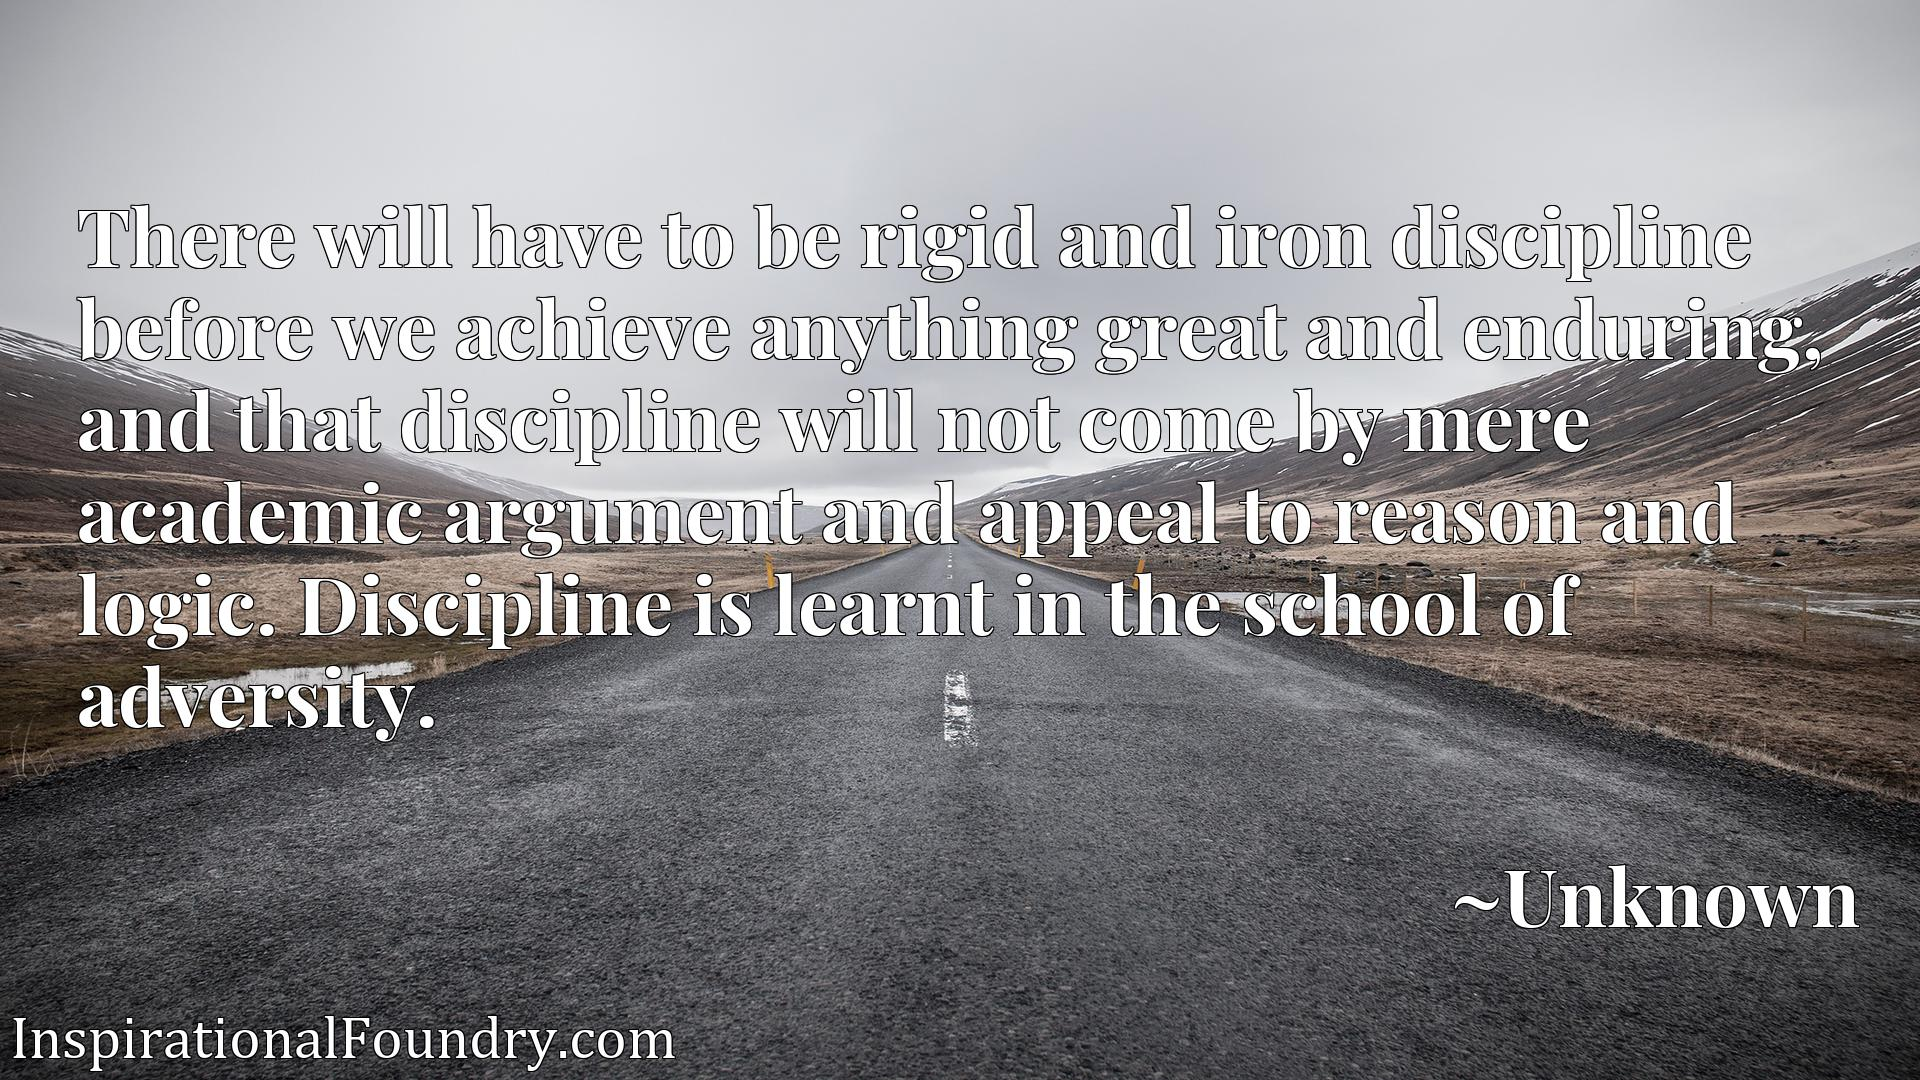 There will have to be rigid and iron discipline before we achieve anything great and enduring, and that discipline will not come by mere academic argument and appeal to reason and logic. Discipline is learnt in the school of adversity.